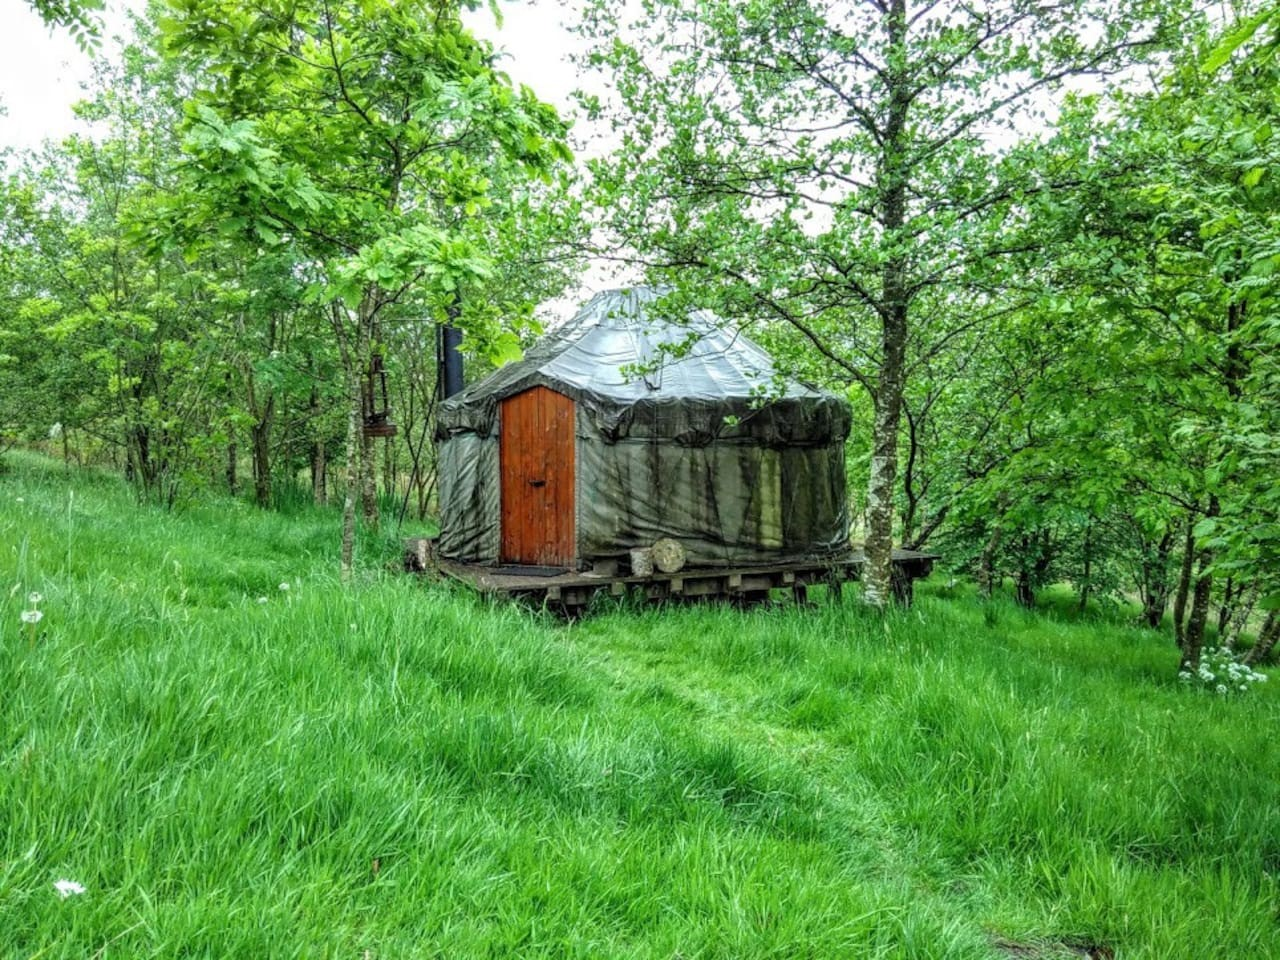 Image of the outside of a yurt for page on Cronkshaw Fold Farm on the Visit Rossendale website